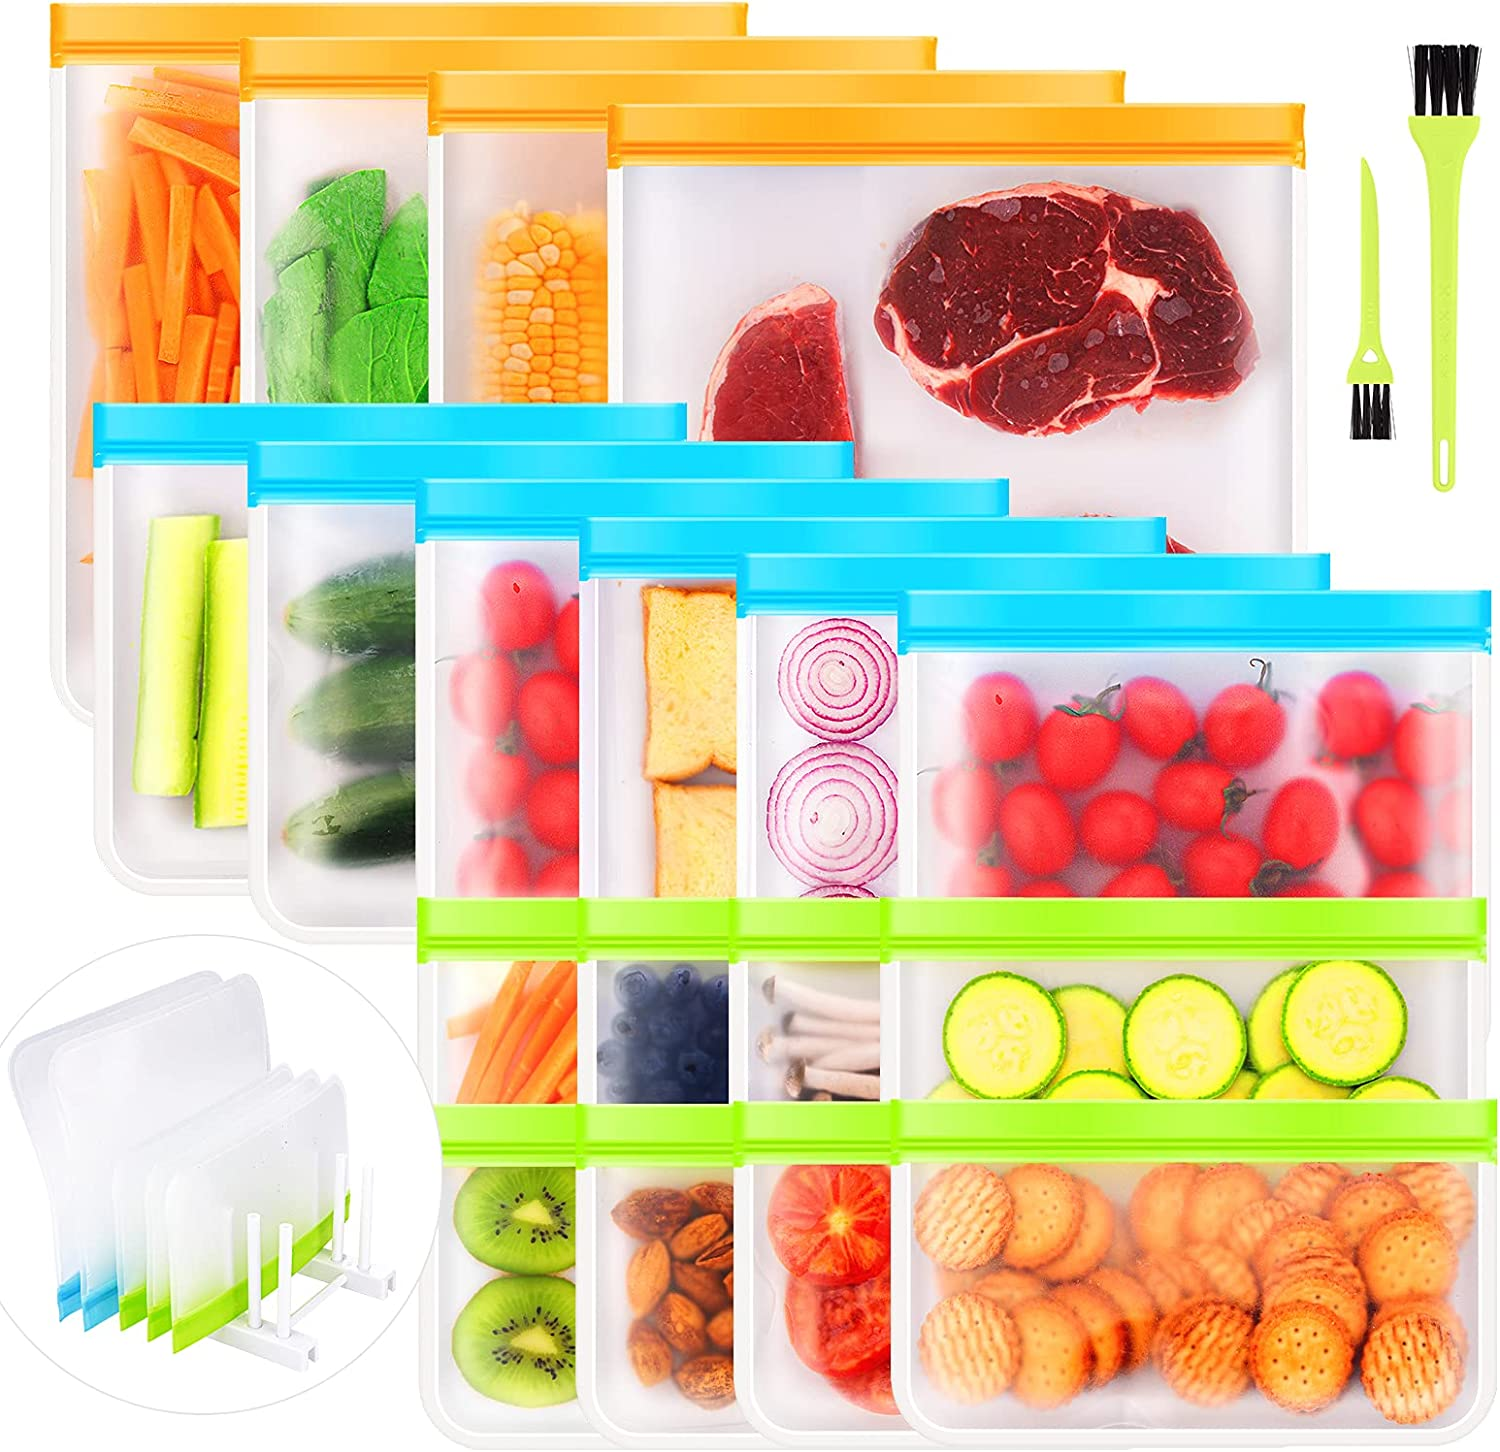 Ceephouge 18 Pack Reusable Food Storage Bags, PEVA Freezer Ziplock Bags-BPA Free, 4 Gallon Bags 6 Sandwich Bags 8 Snack Bags with Drying Rack & Cleaning Brush (Colorful, 18)